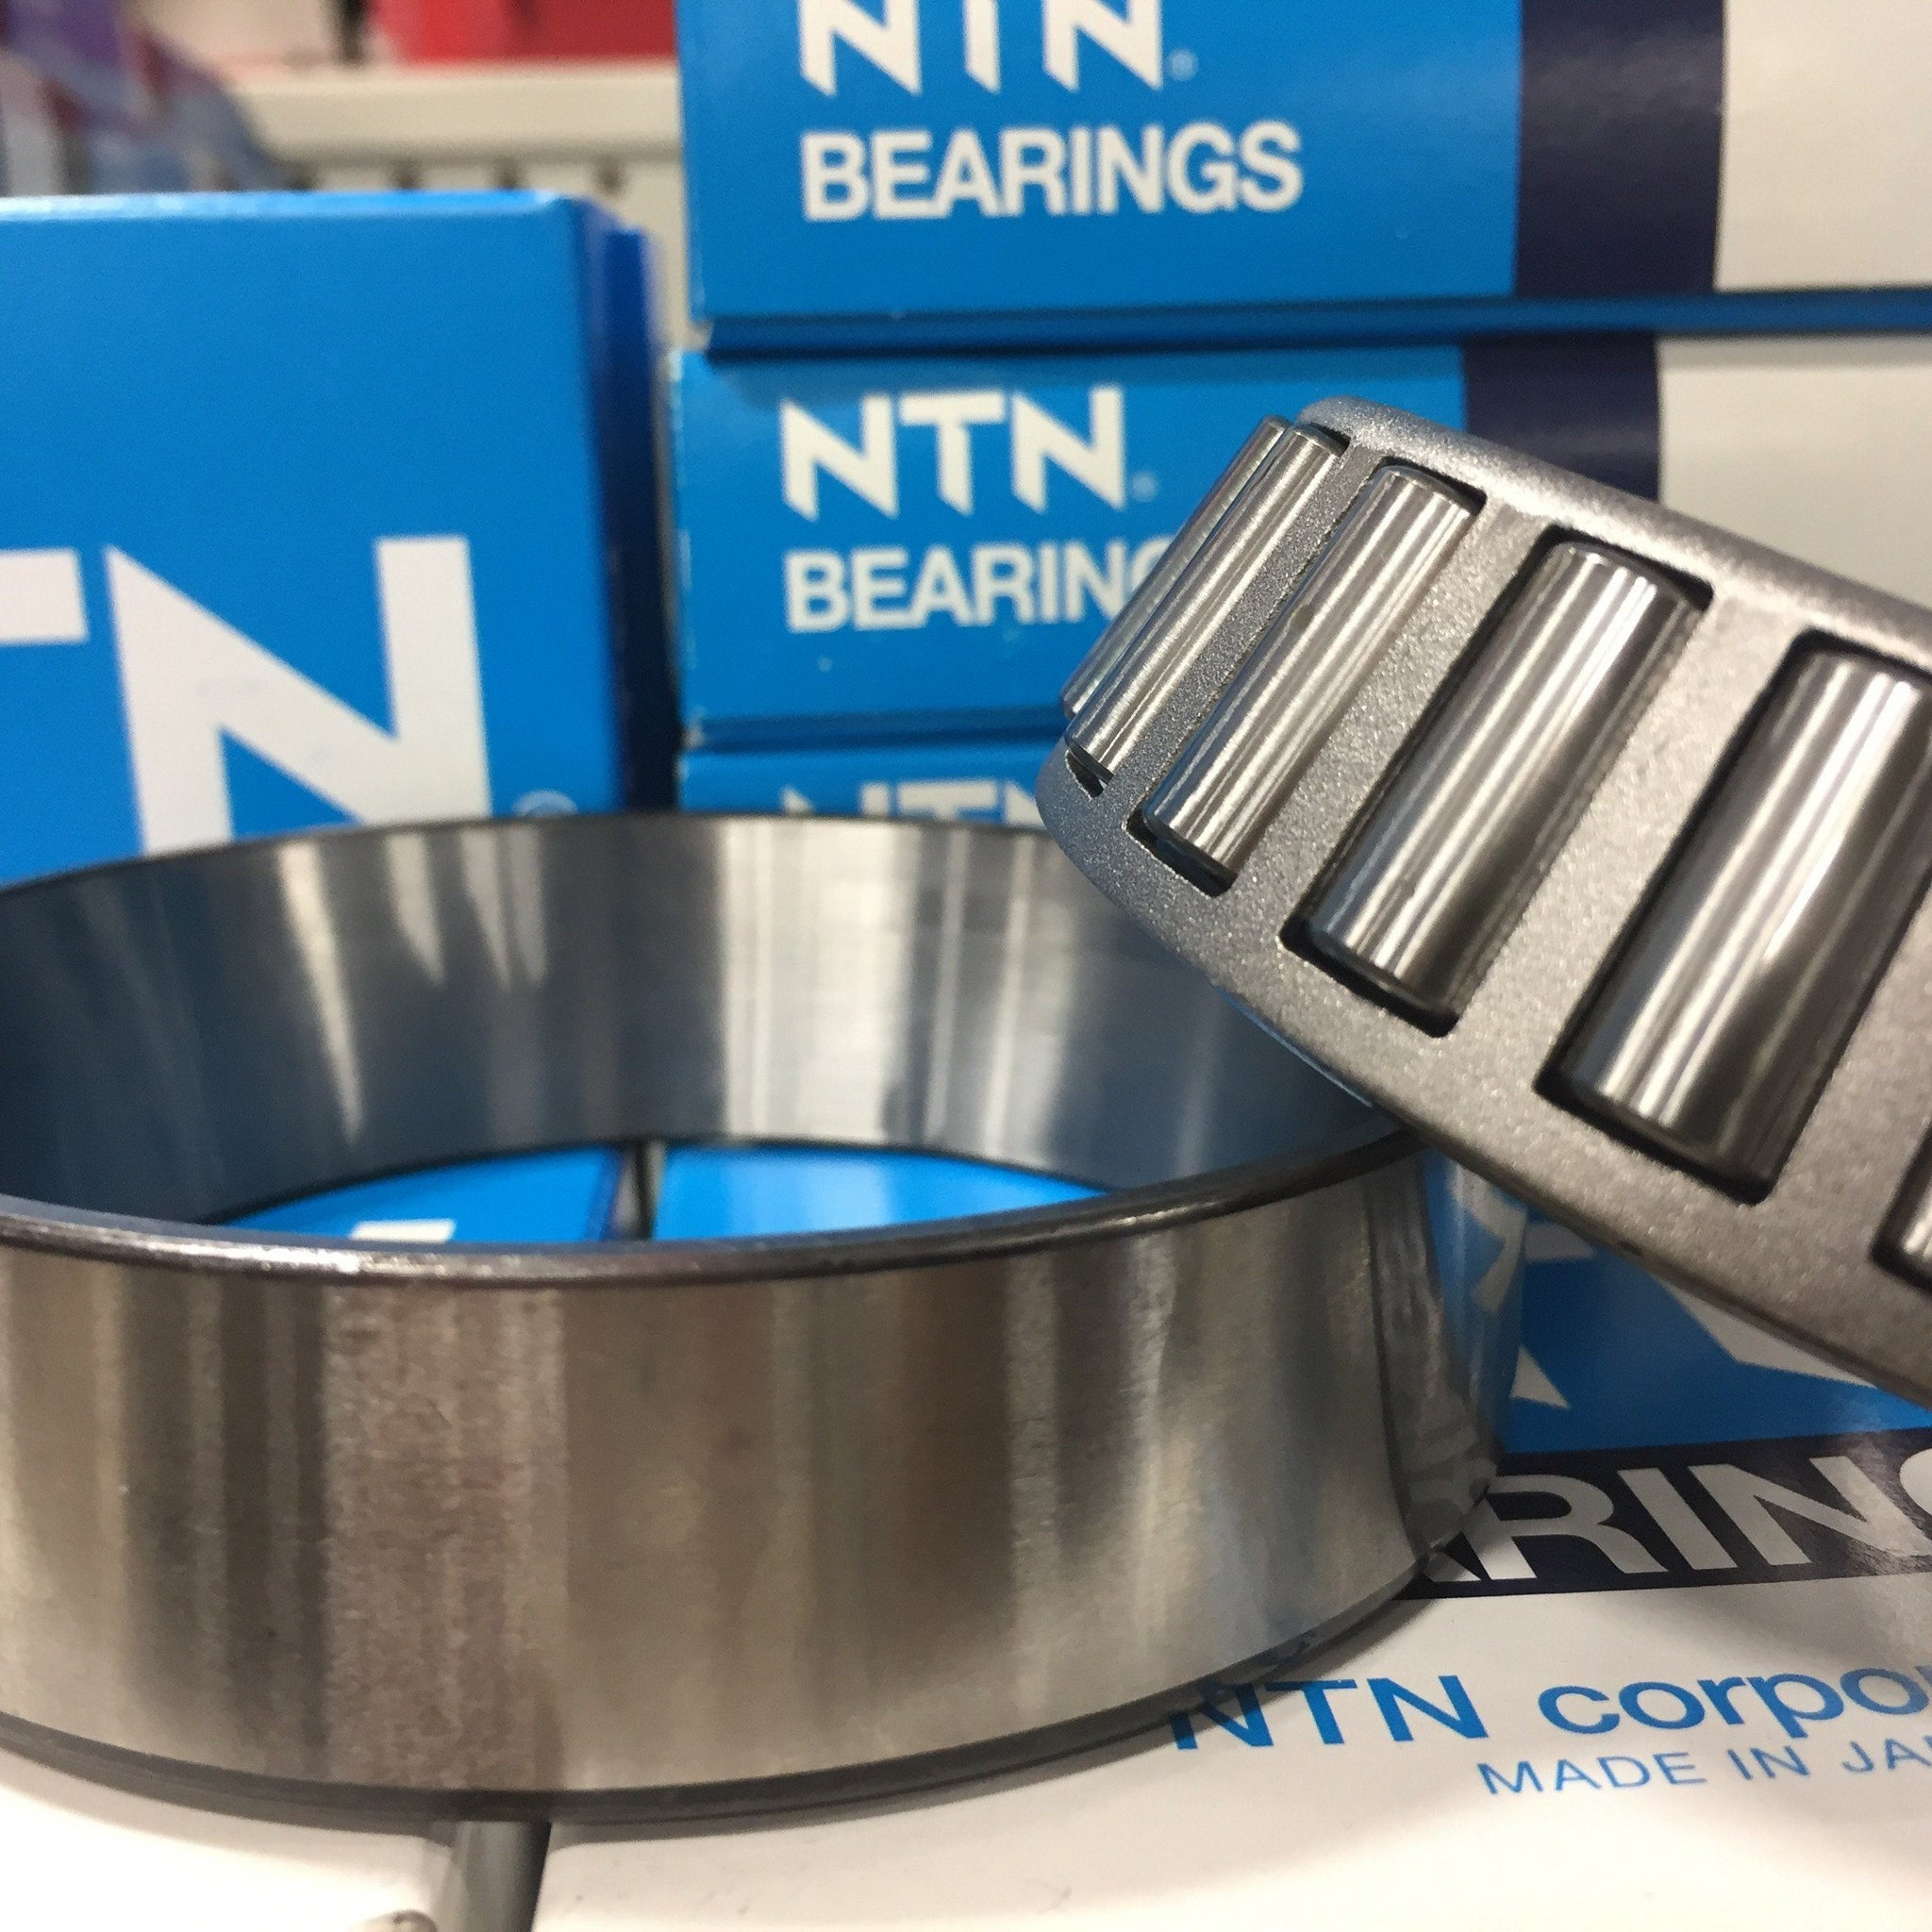 Race L68111 - NTN Axle Components Nationwide Trailers Parts Store